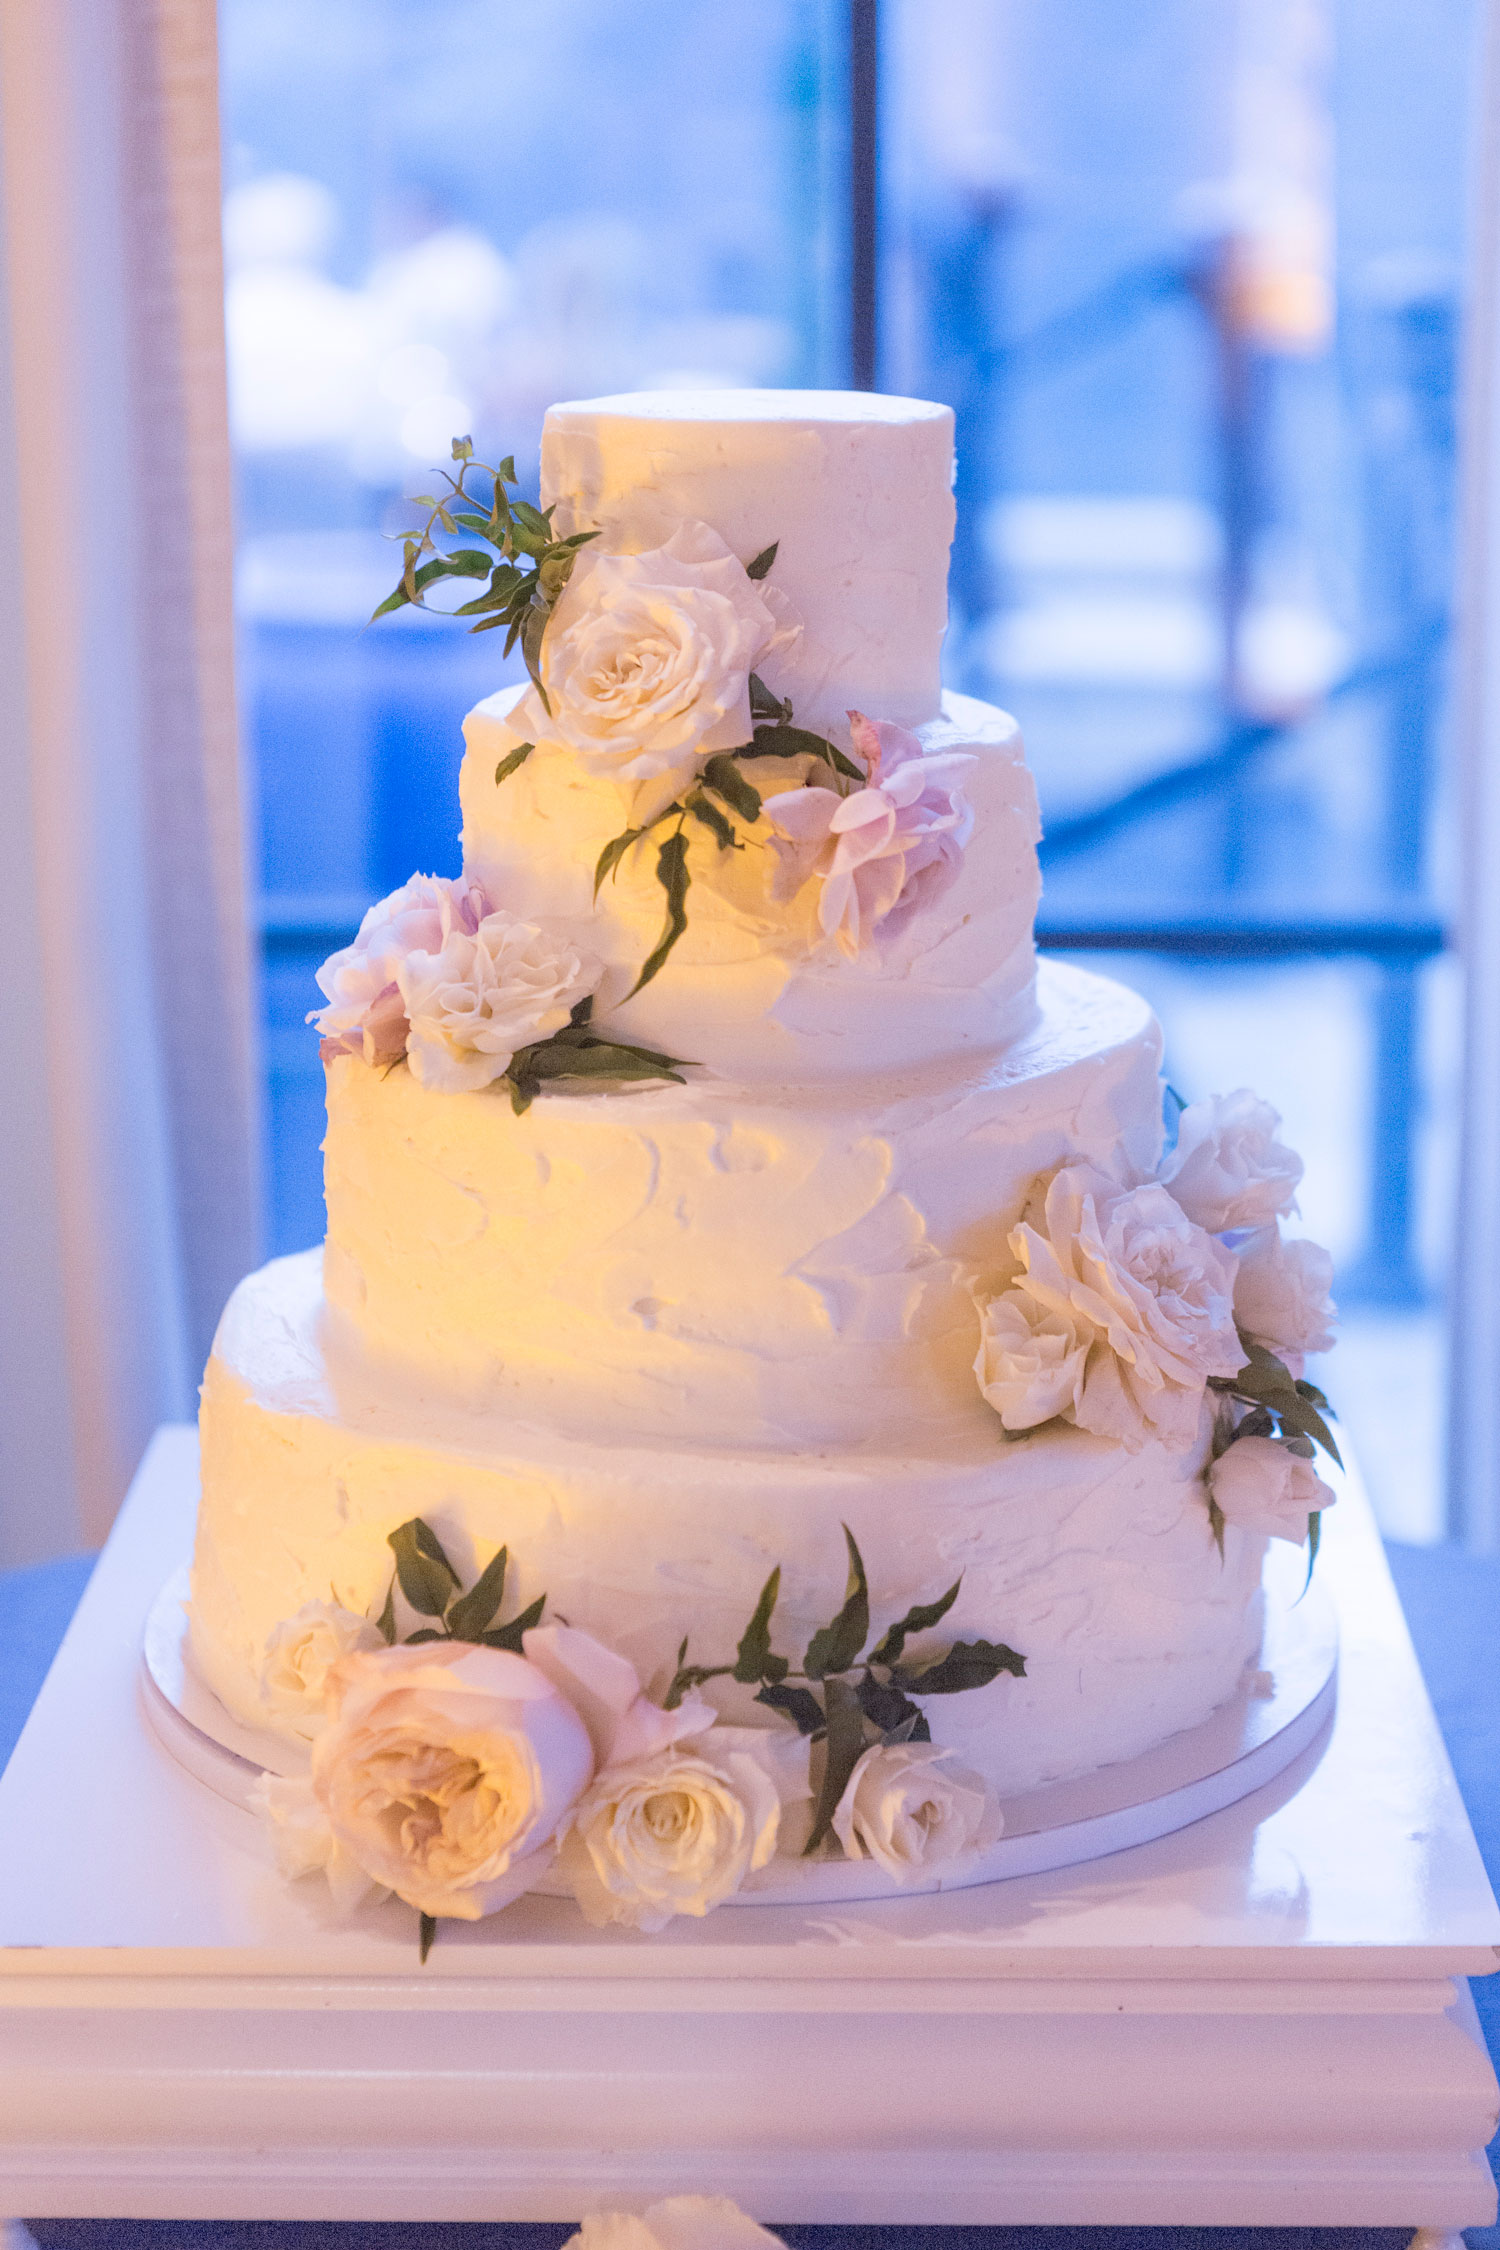 Simple white wedding cake buttercream frosting with fresh flower decorations royal wedding inspiration